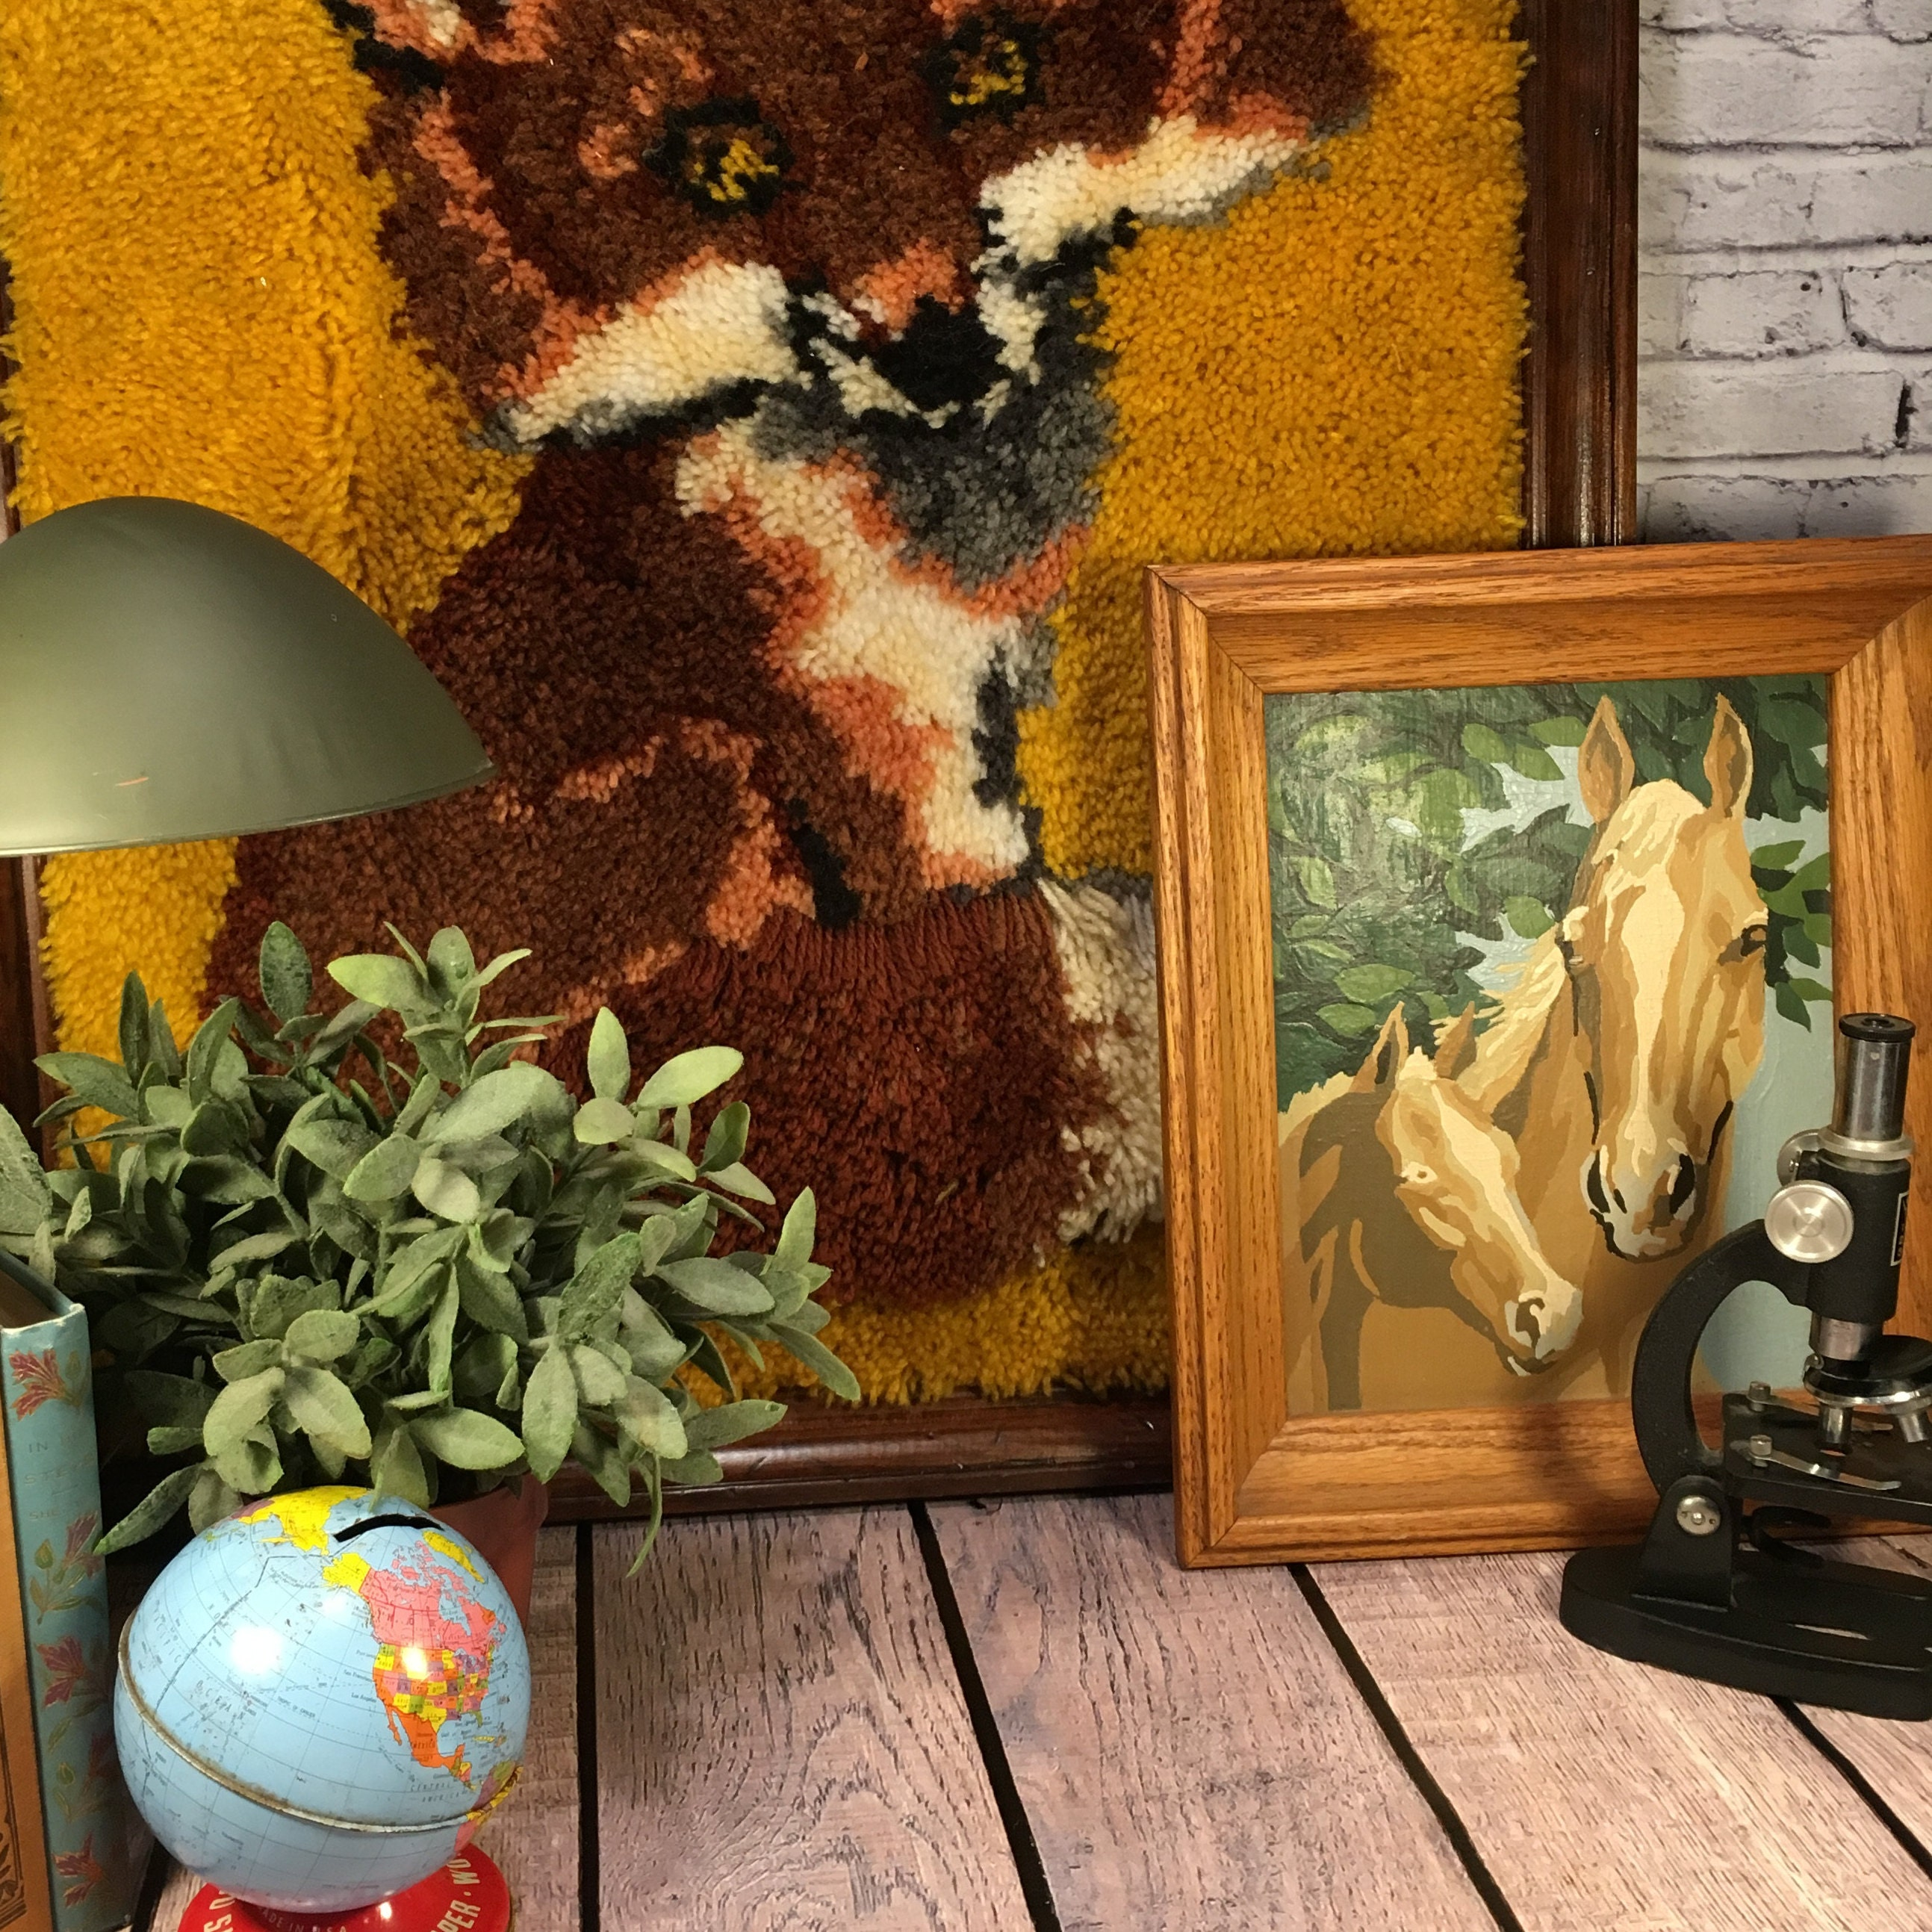 Curated Vintage Home Decor & Repurposed Thrifty By OneCozyNest